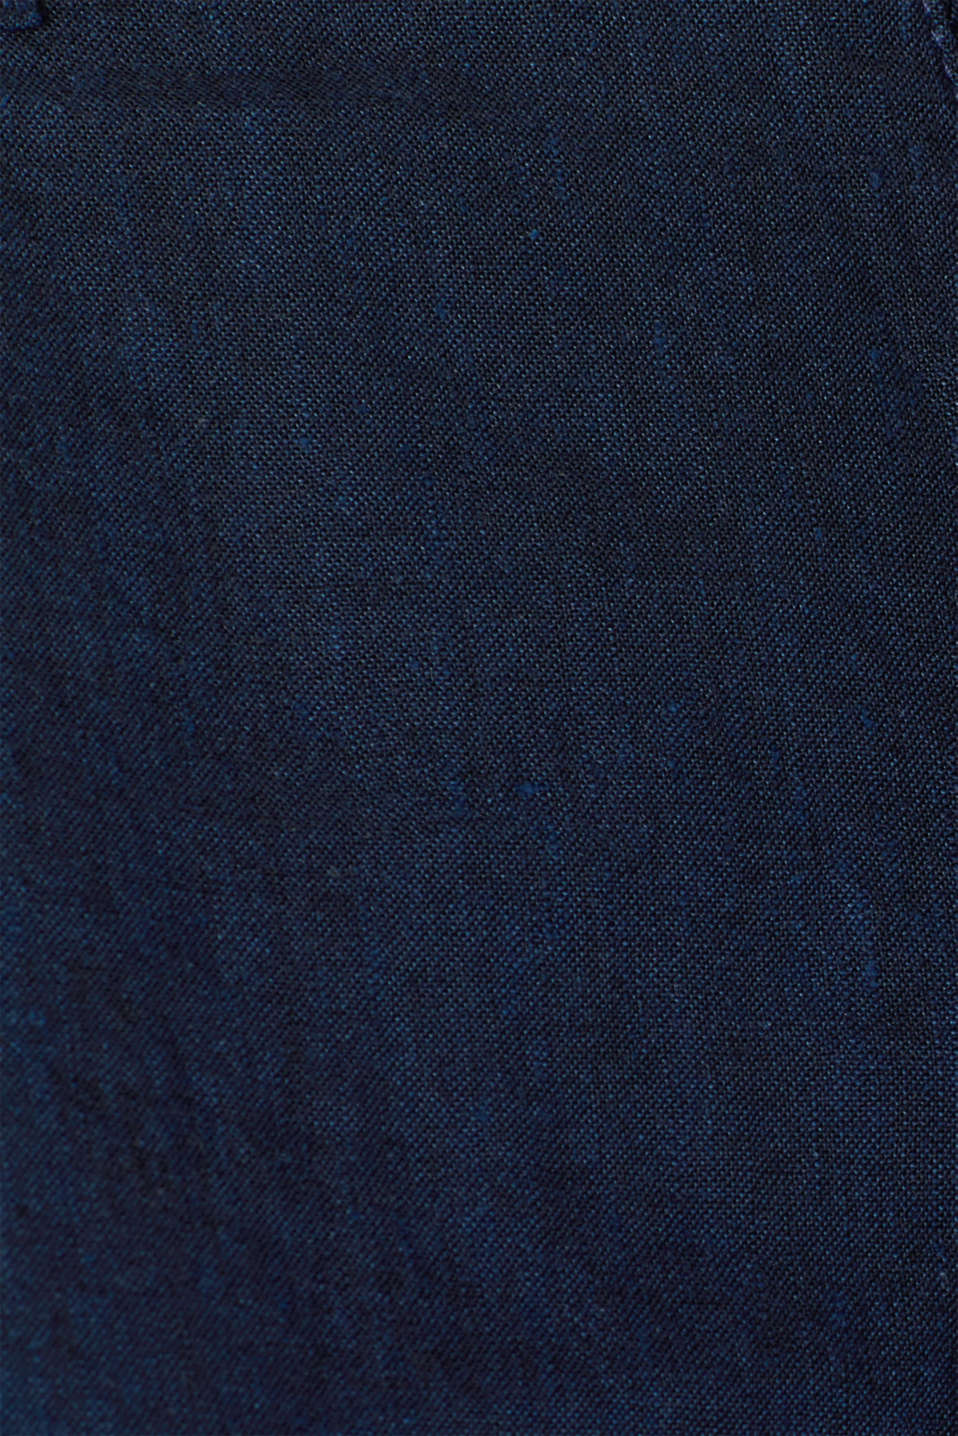 Linen blend: Trousers with stretch for comfort, NAVY, detail image number 4